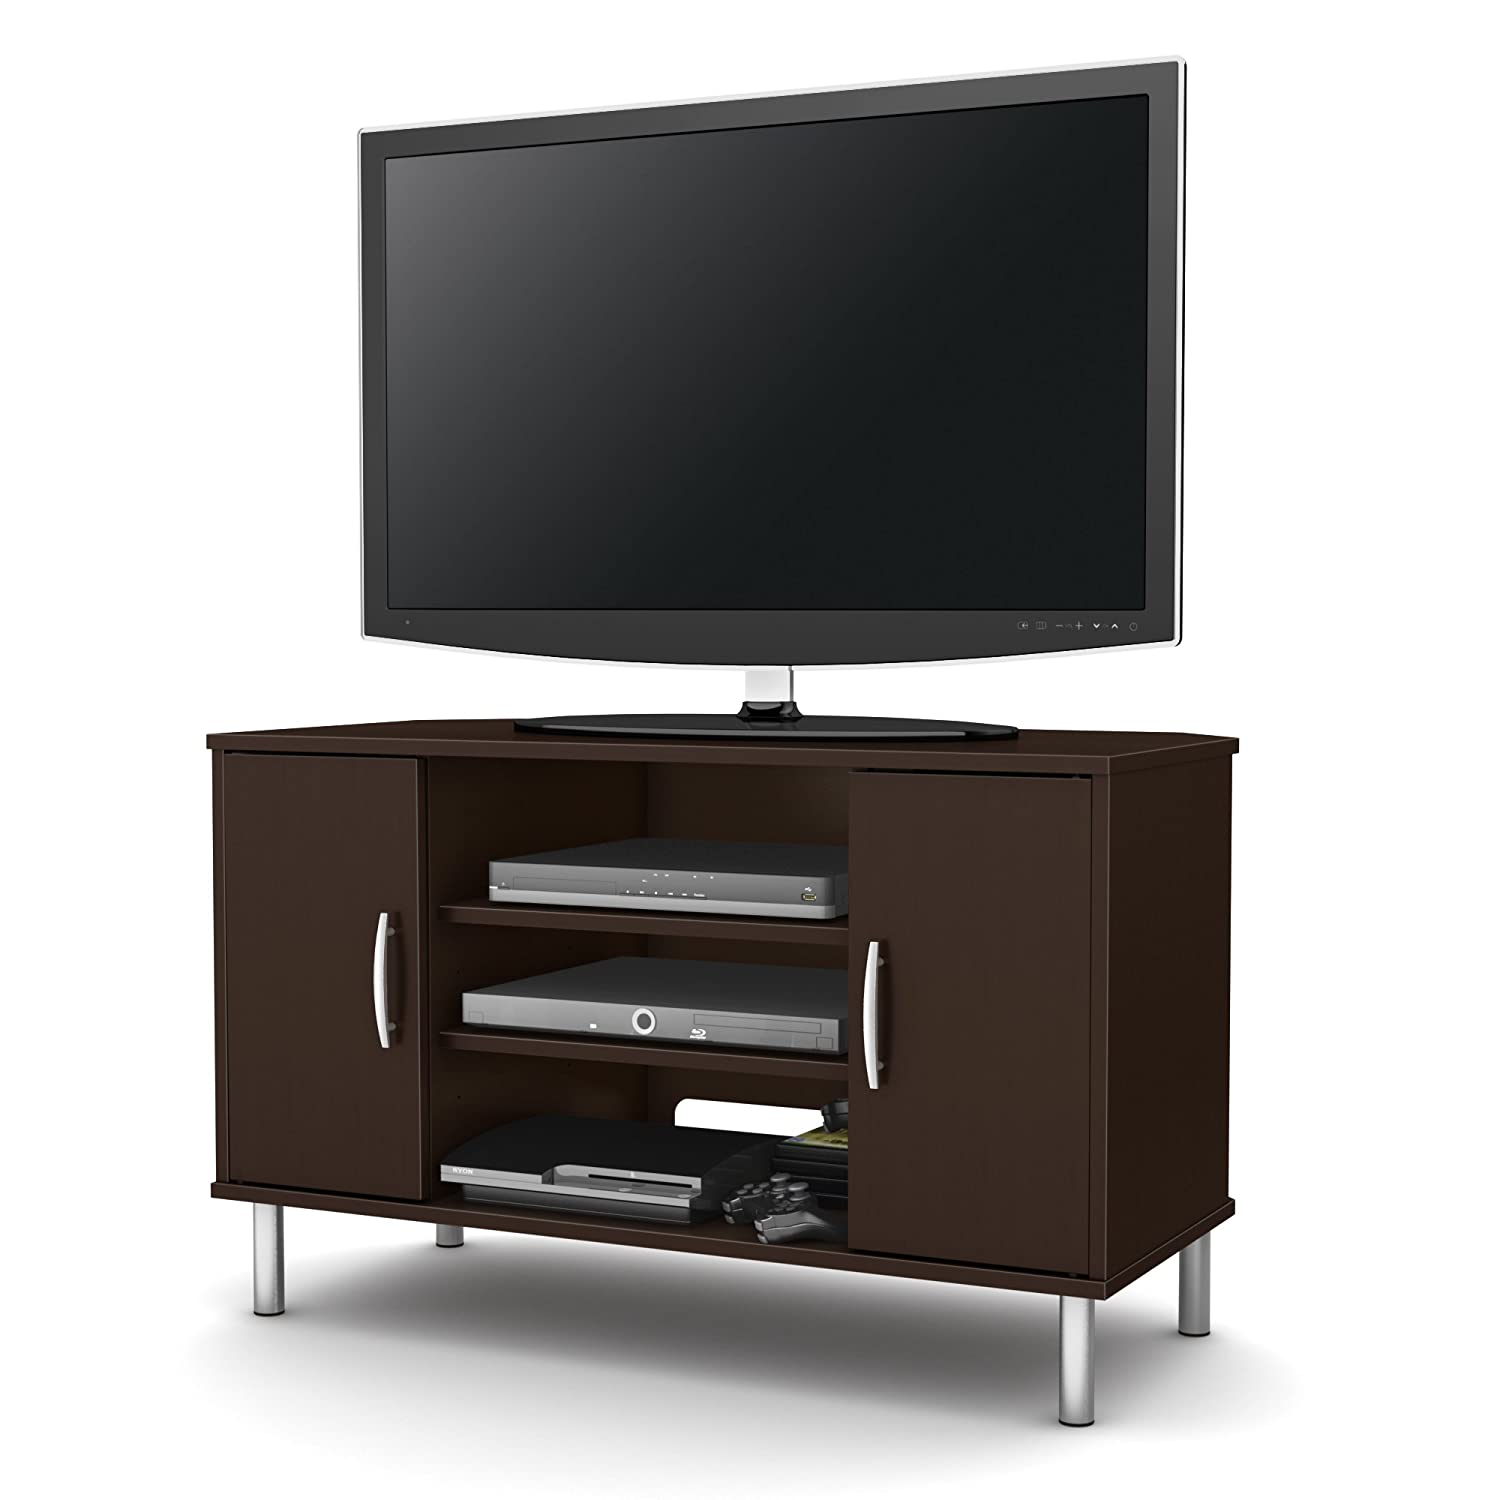 amazoncom south shore renta corner tv stand chocolate kitchen  - amazoncom south shore renta corner tv stand chocolate kitchen  dining